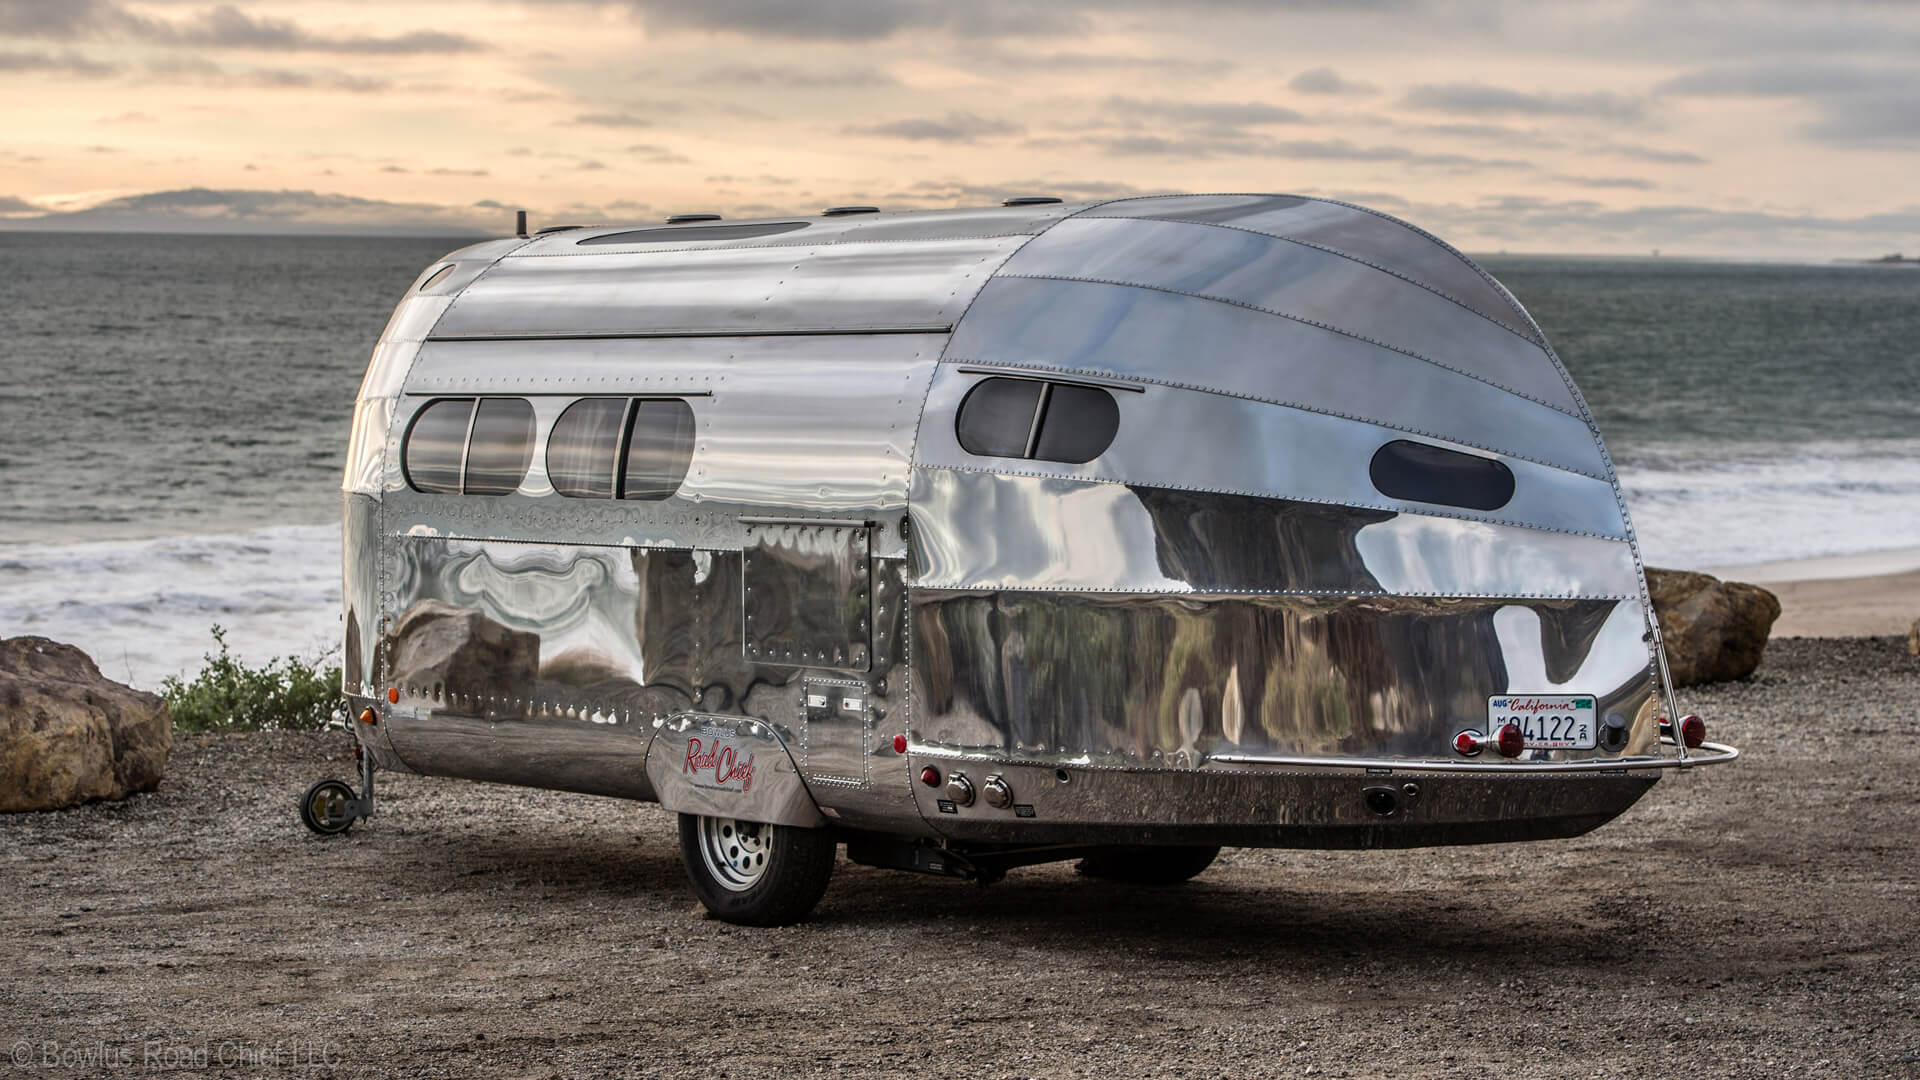 The Most Reliable RV on The Market